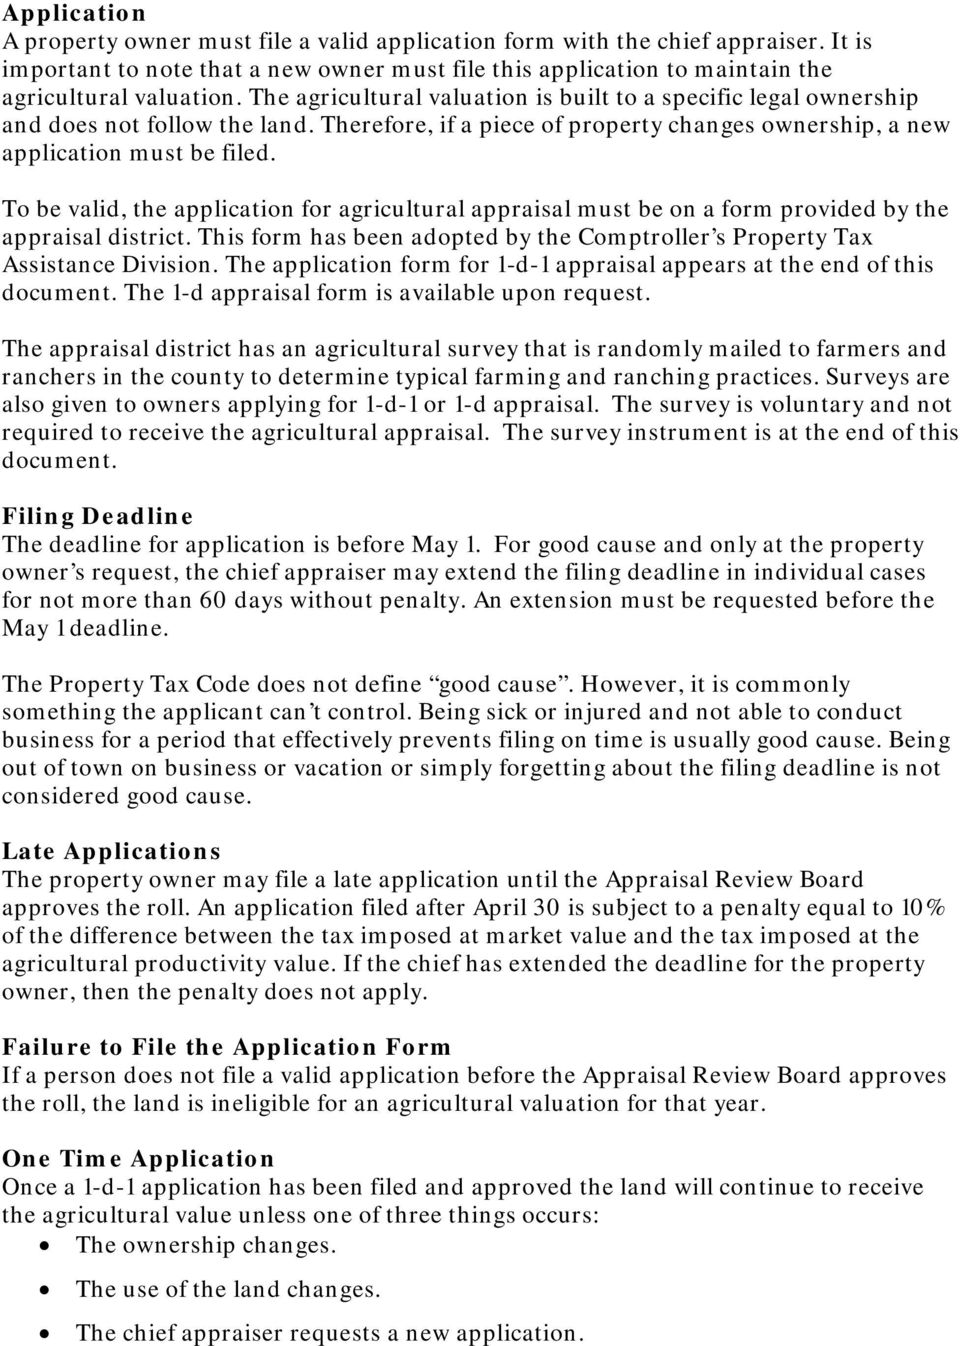 To be valid, the application for agricultural appraisal must be on a form provided by the appraisal district. This form has been adopted by the Comptroller s Property Tax Assistance Division.